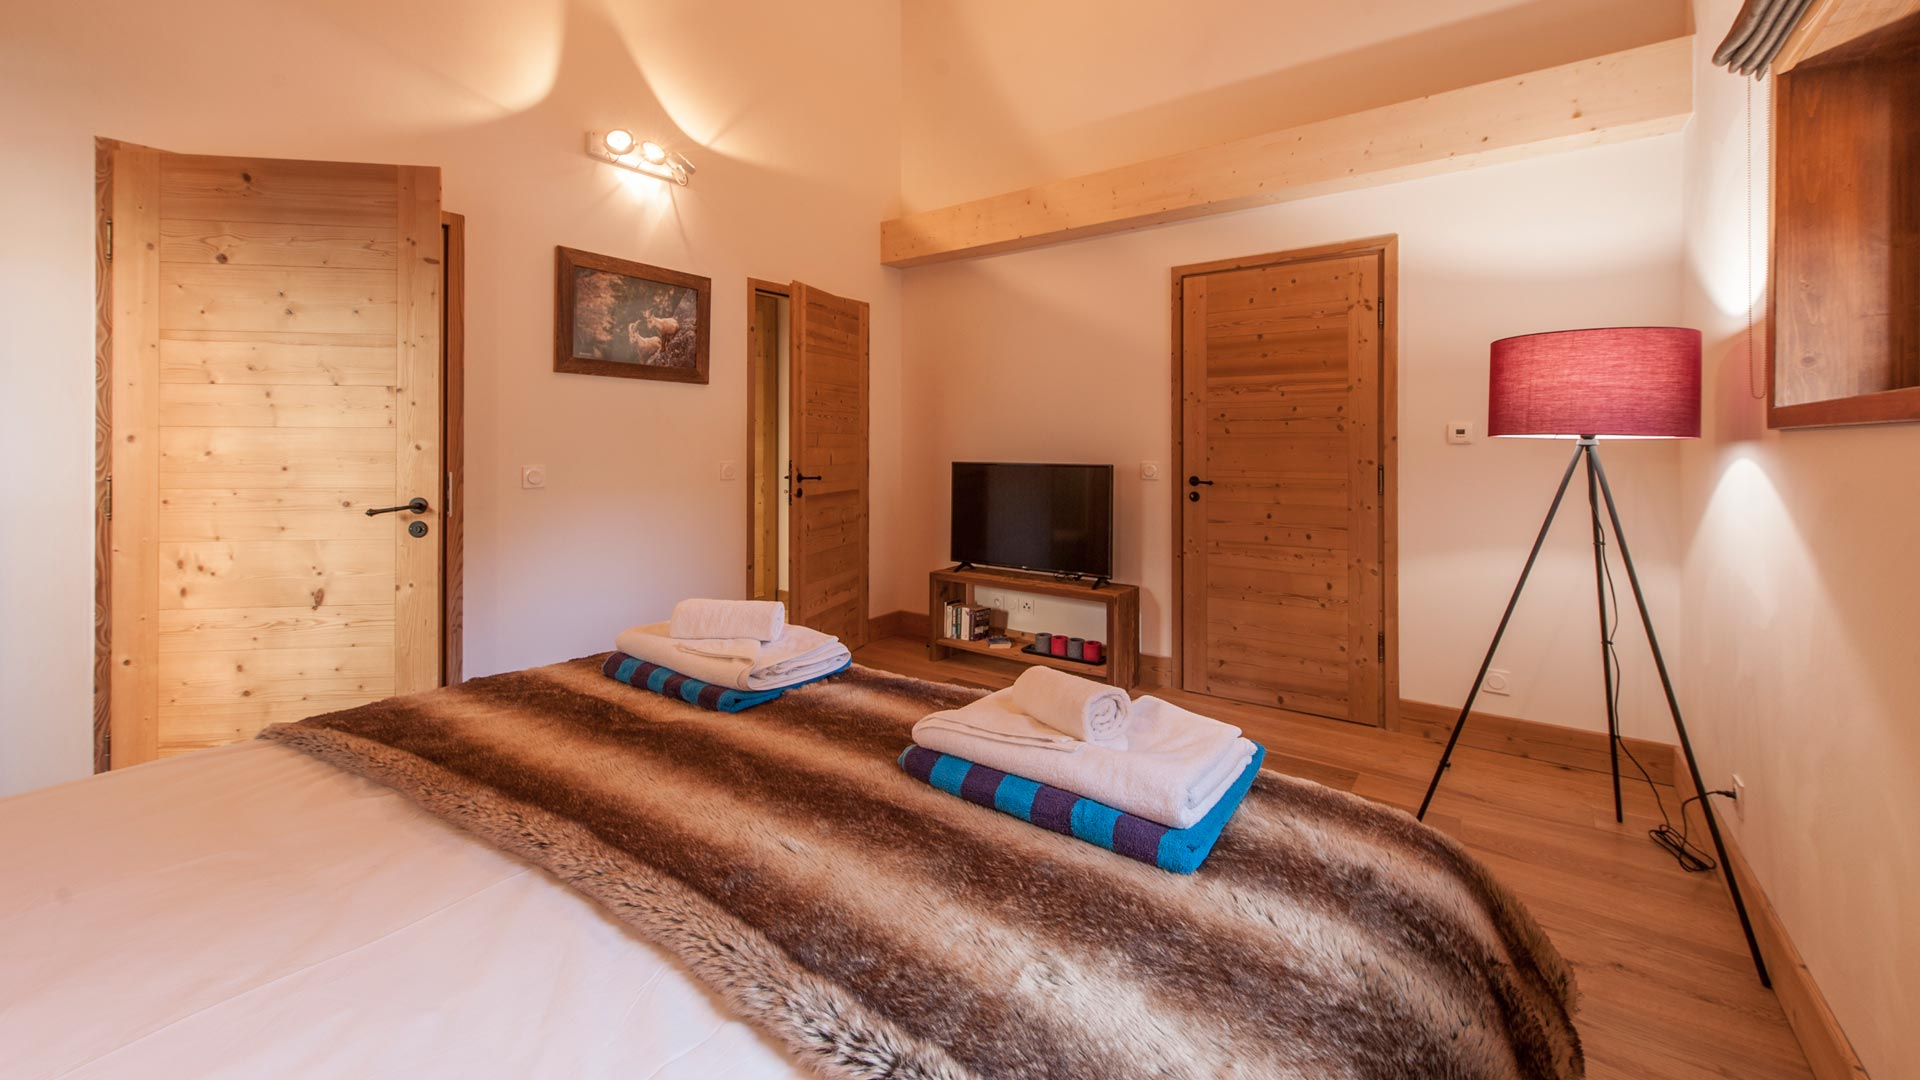 Bedroom 2 - Haut Brion Luxury Self Catered Chalet in Sainte Foy